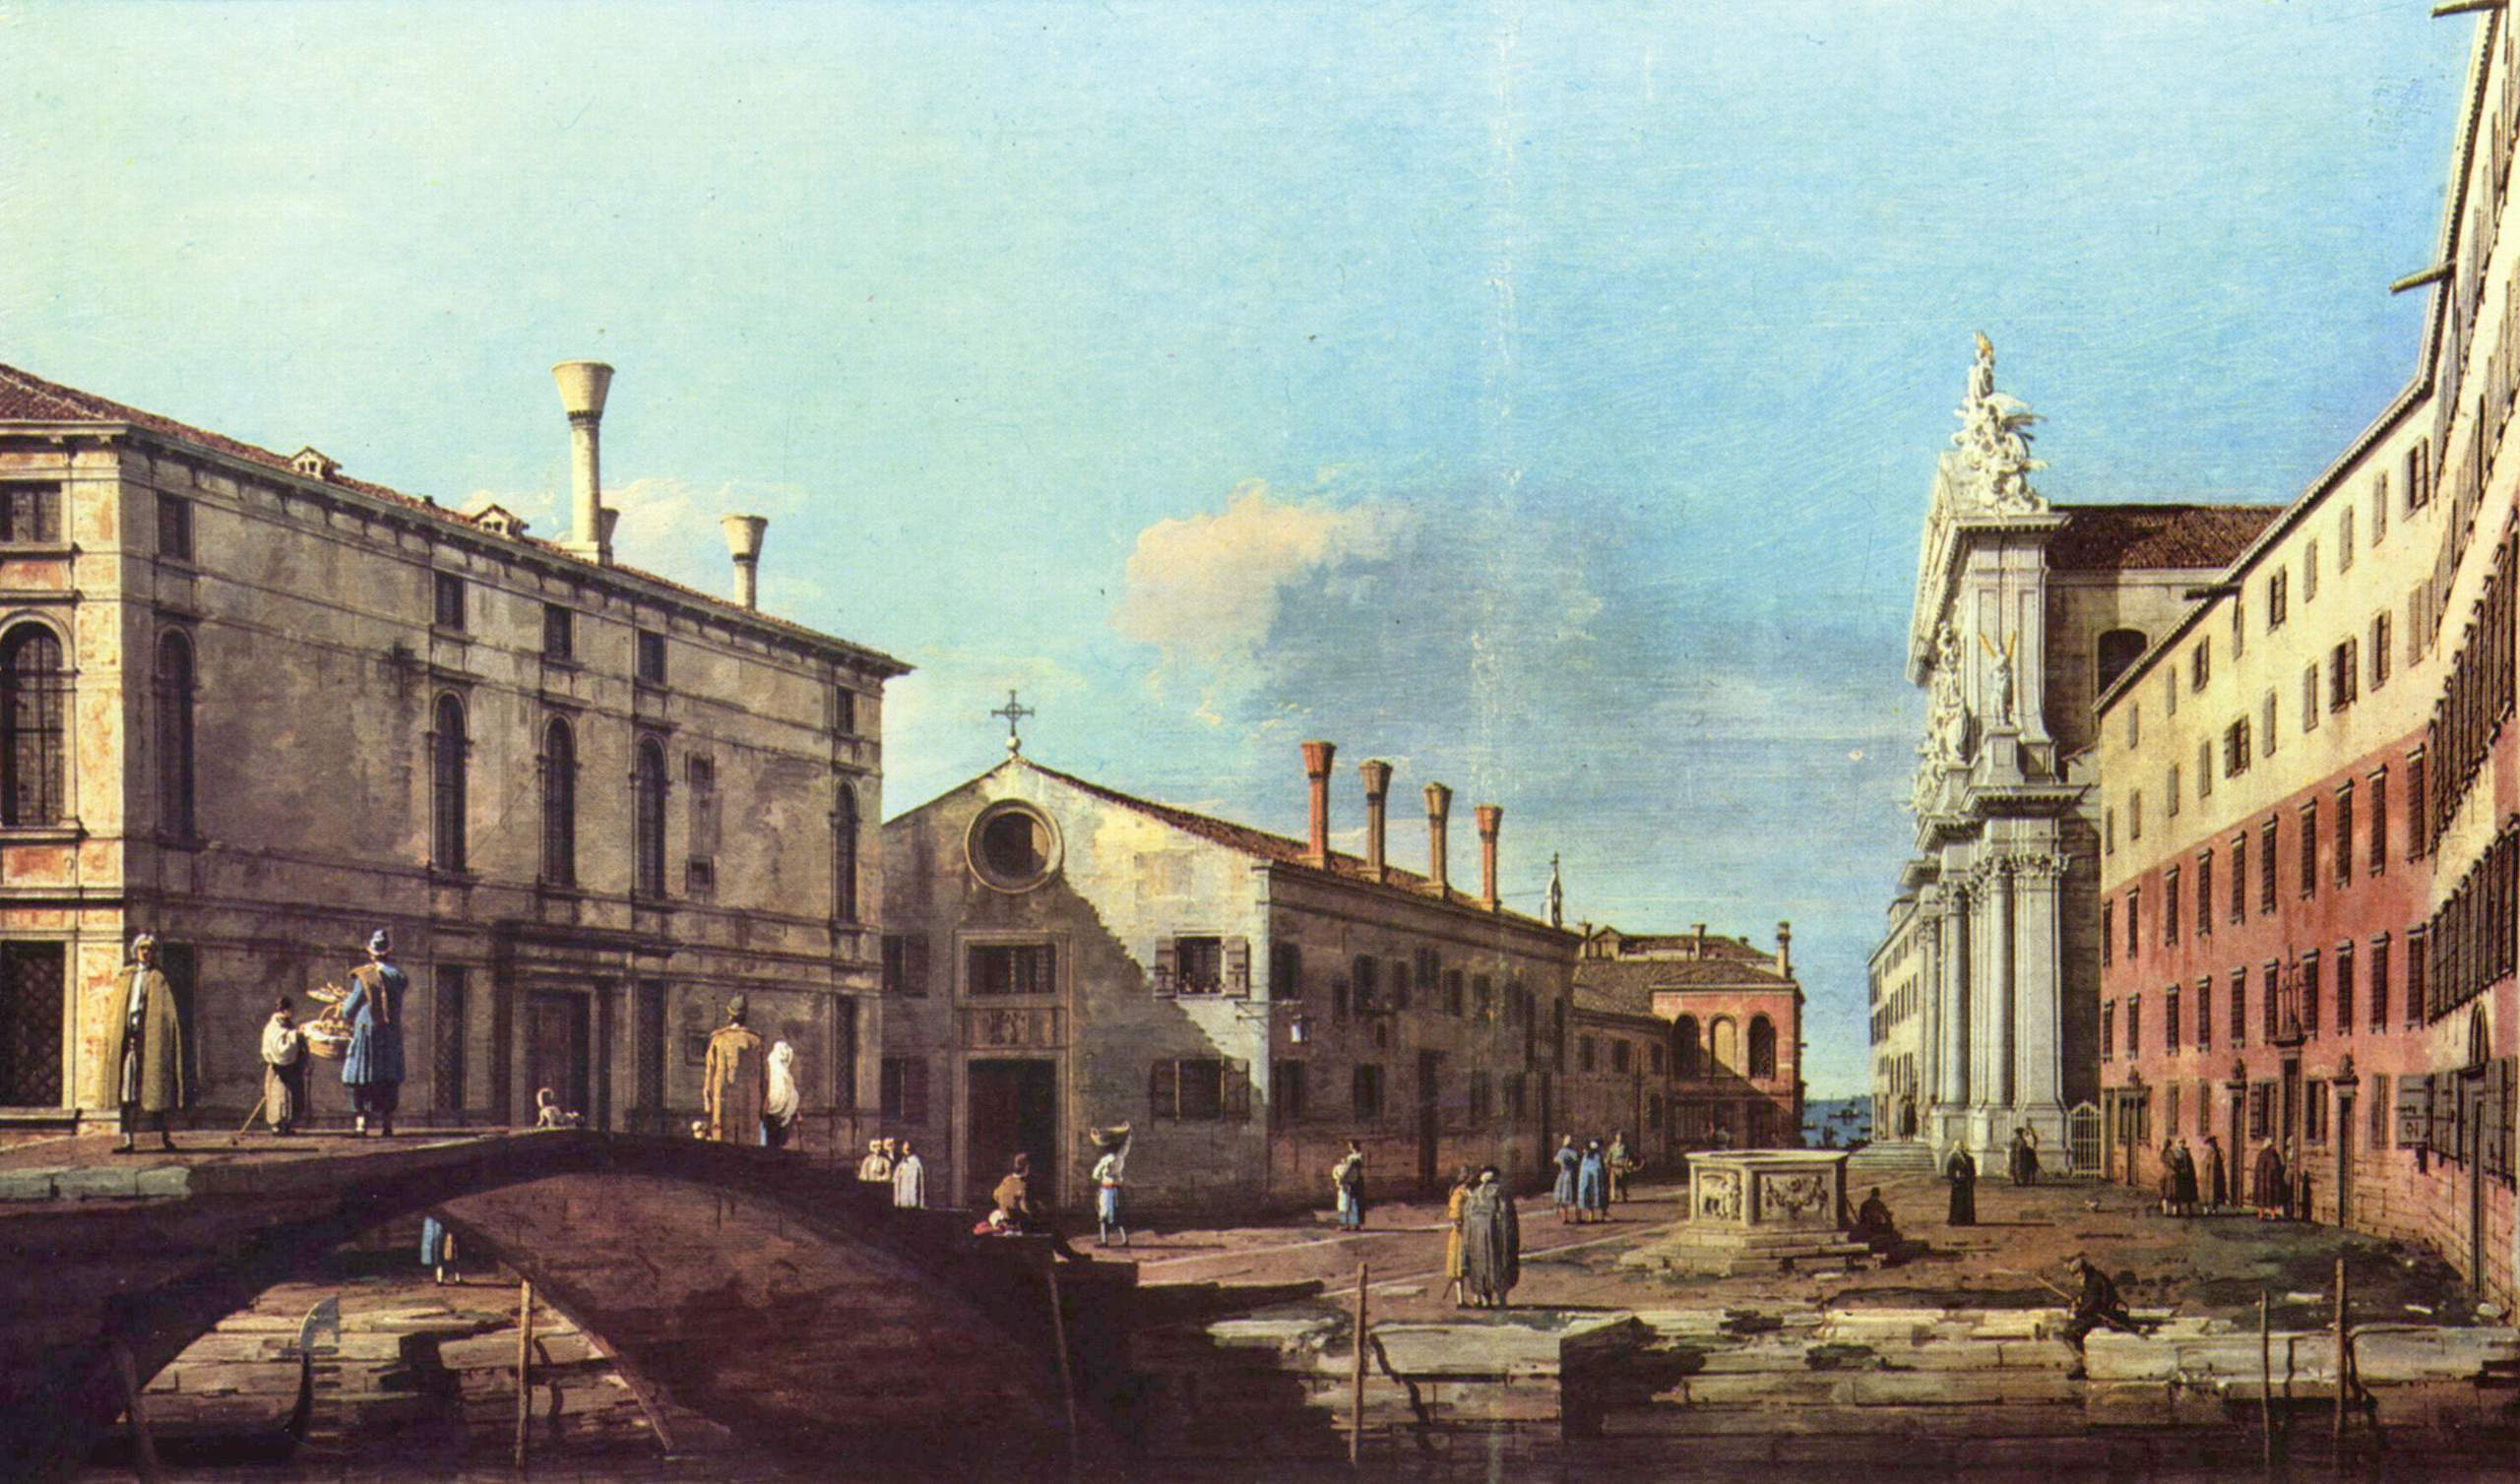 http://upload.wikimedia.org/wikipedia/commons/a/ac/Canaletto_%28II%29_008.jpg